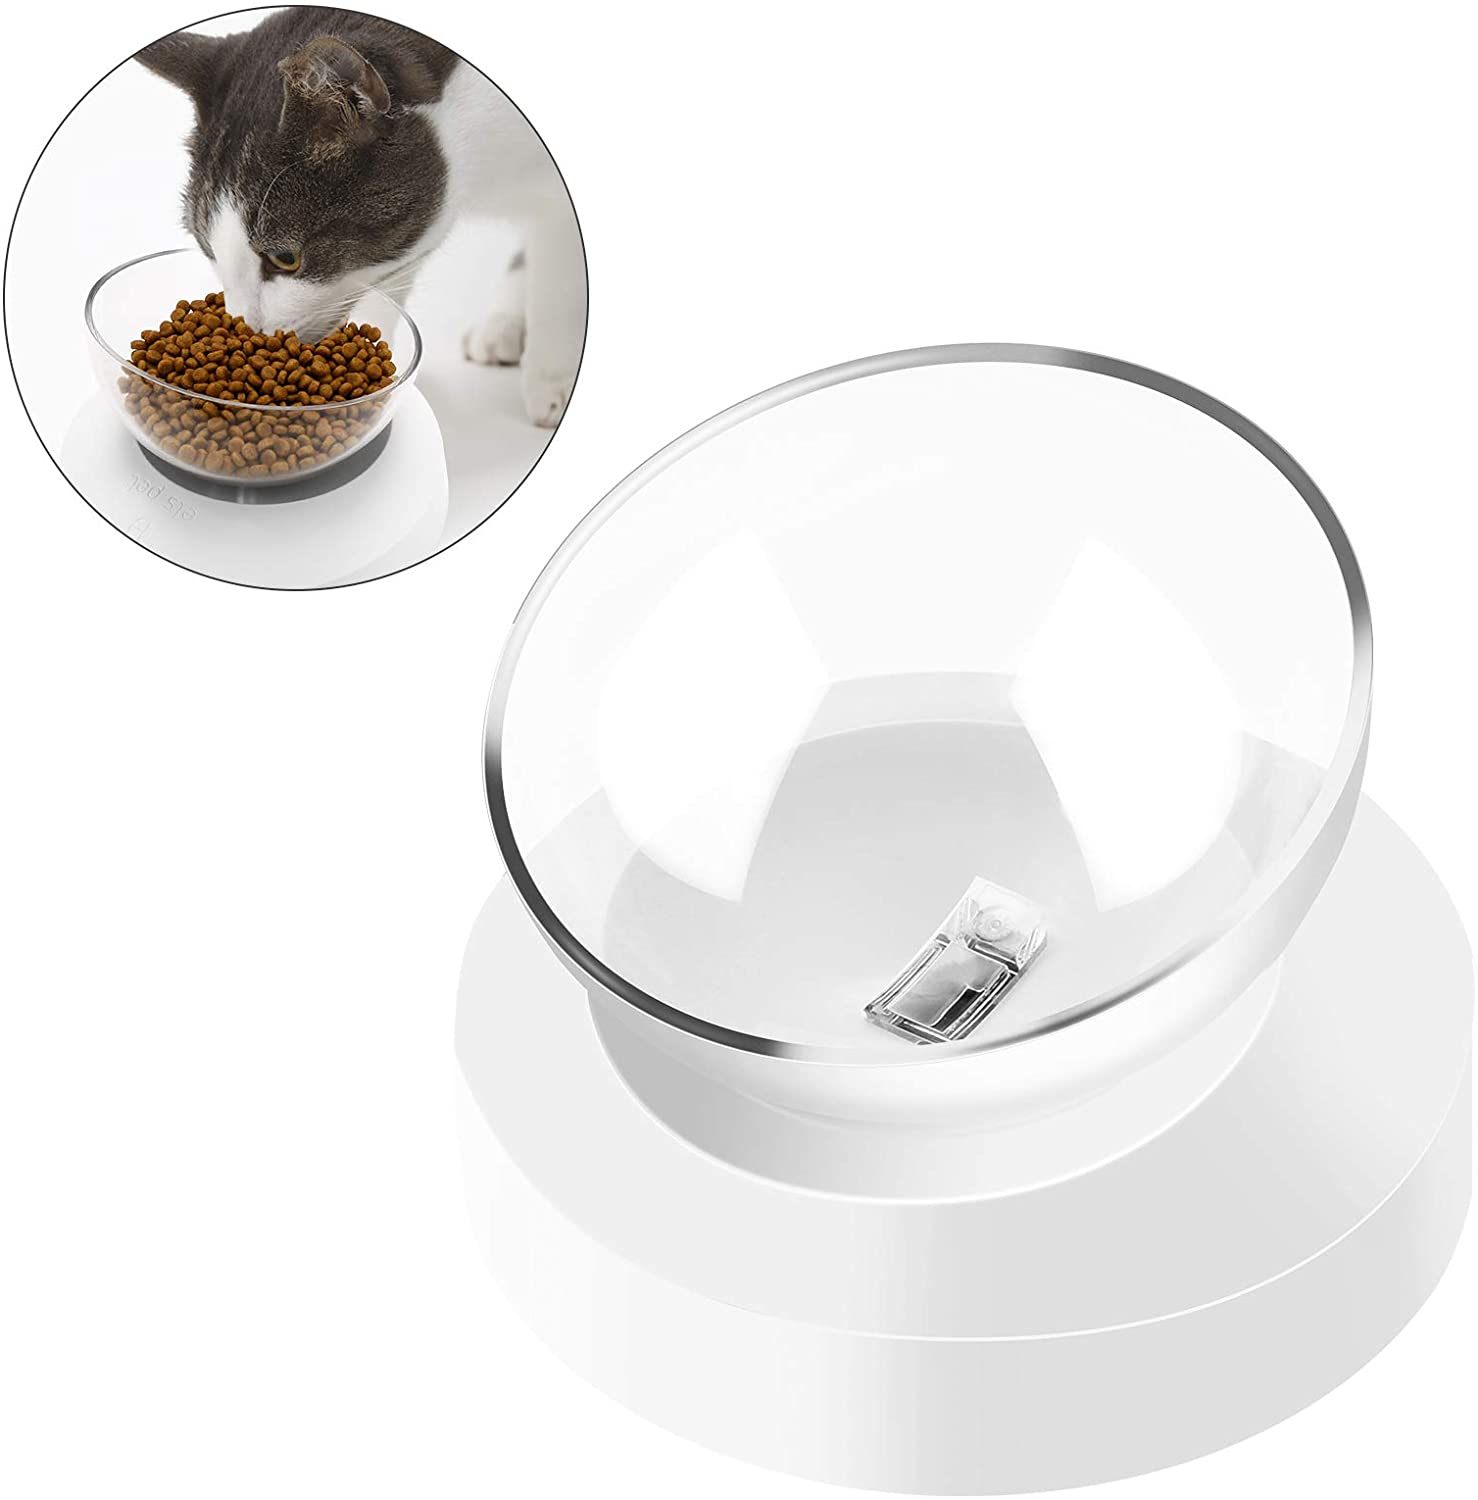 FPVERA Cat Dog Bowl Raised Cat Food Water Bowl with Detachable Elevated Stand 0-20°Adjustable Tilted Pet Bow for Cats and Small Dogs